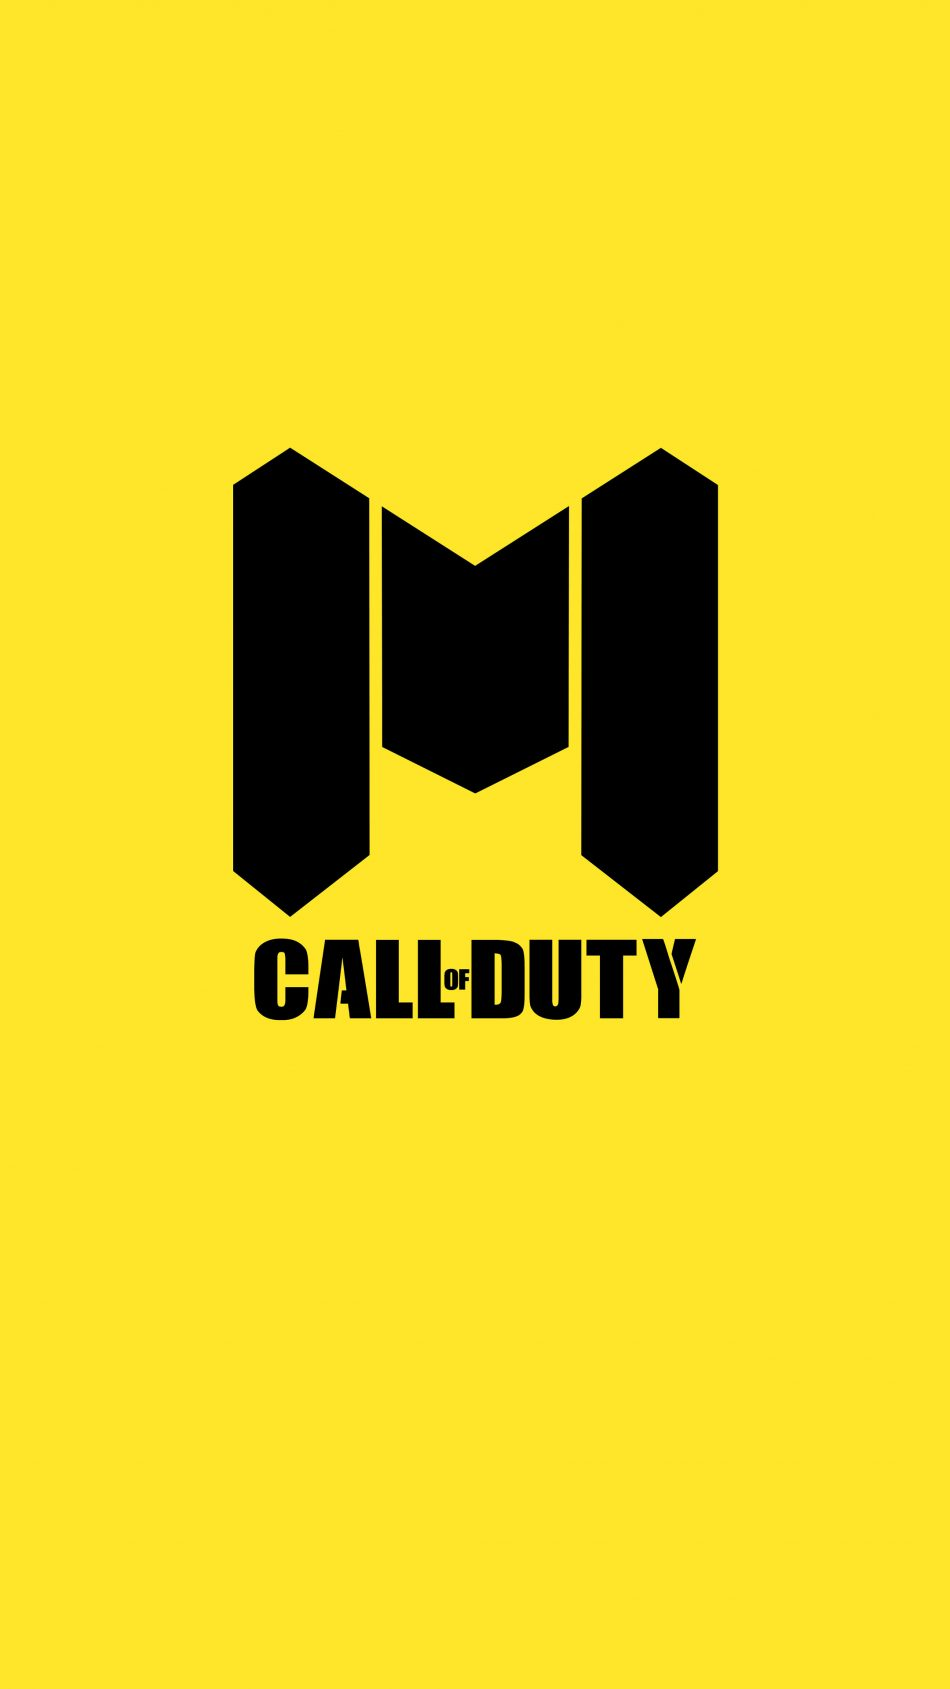 Call Of Duty Mobile Logo Yellow Background 4k Ultra Hd Mobile